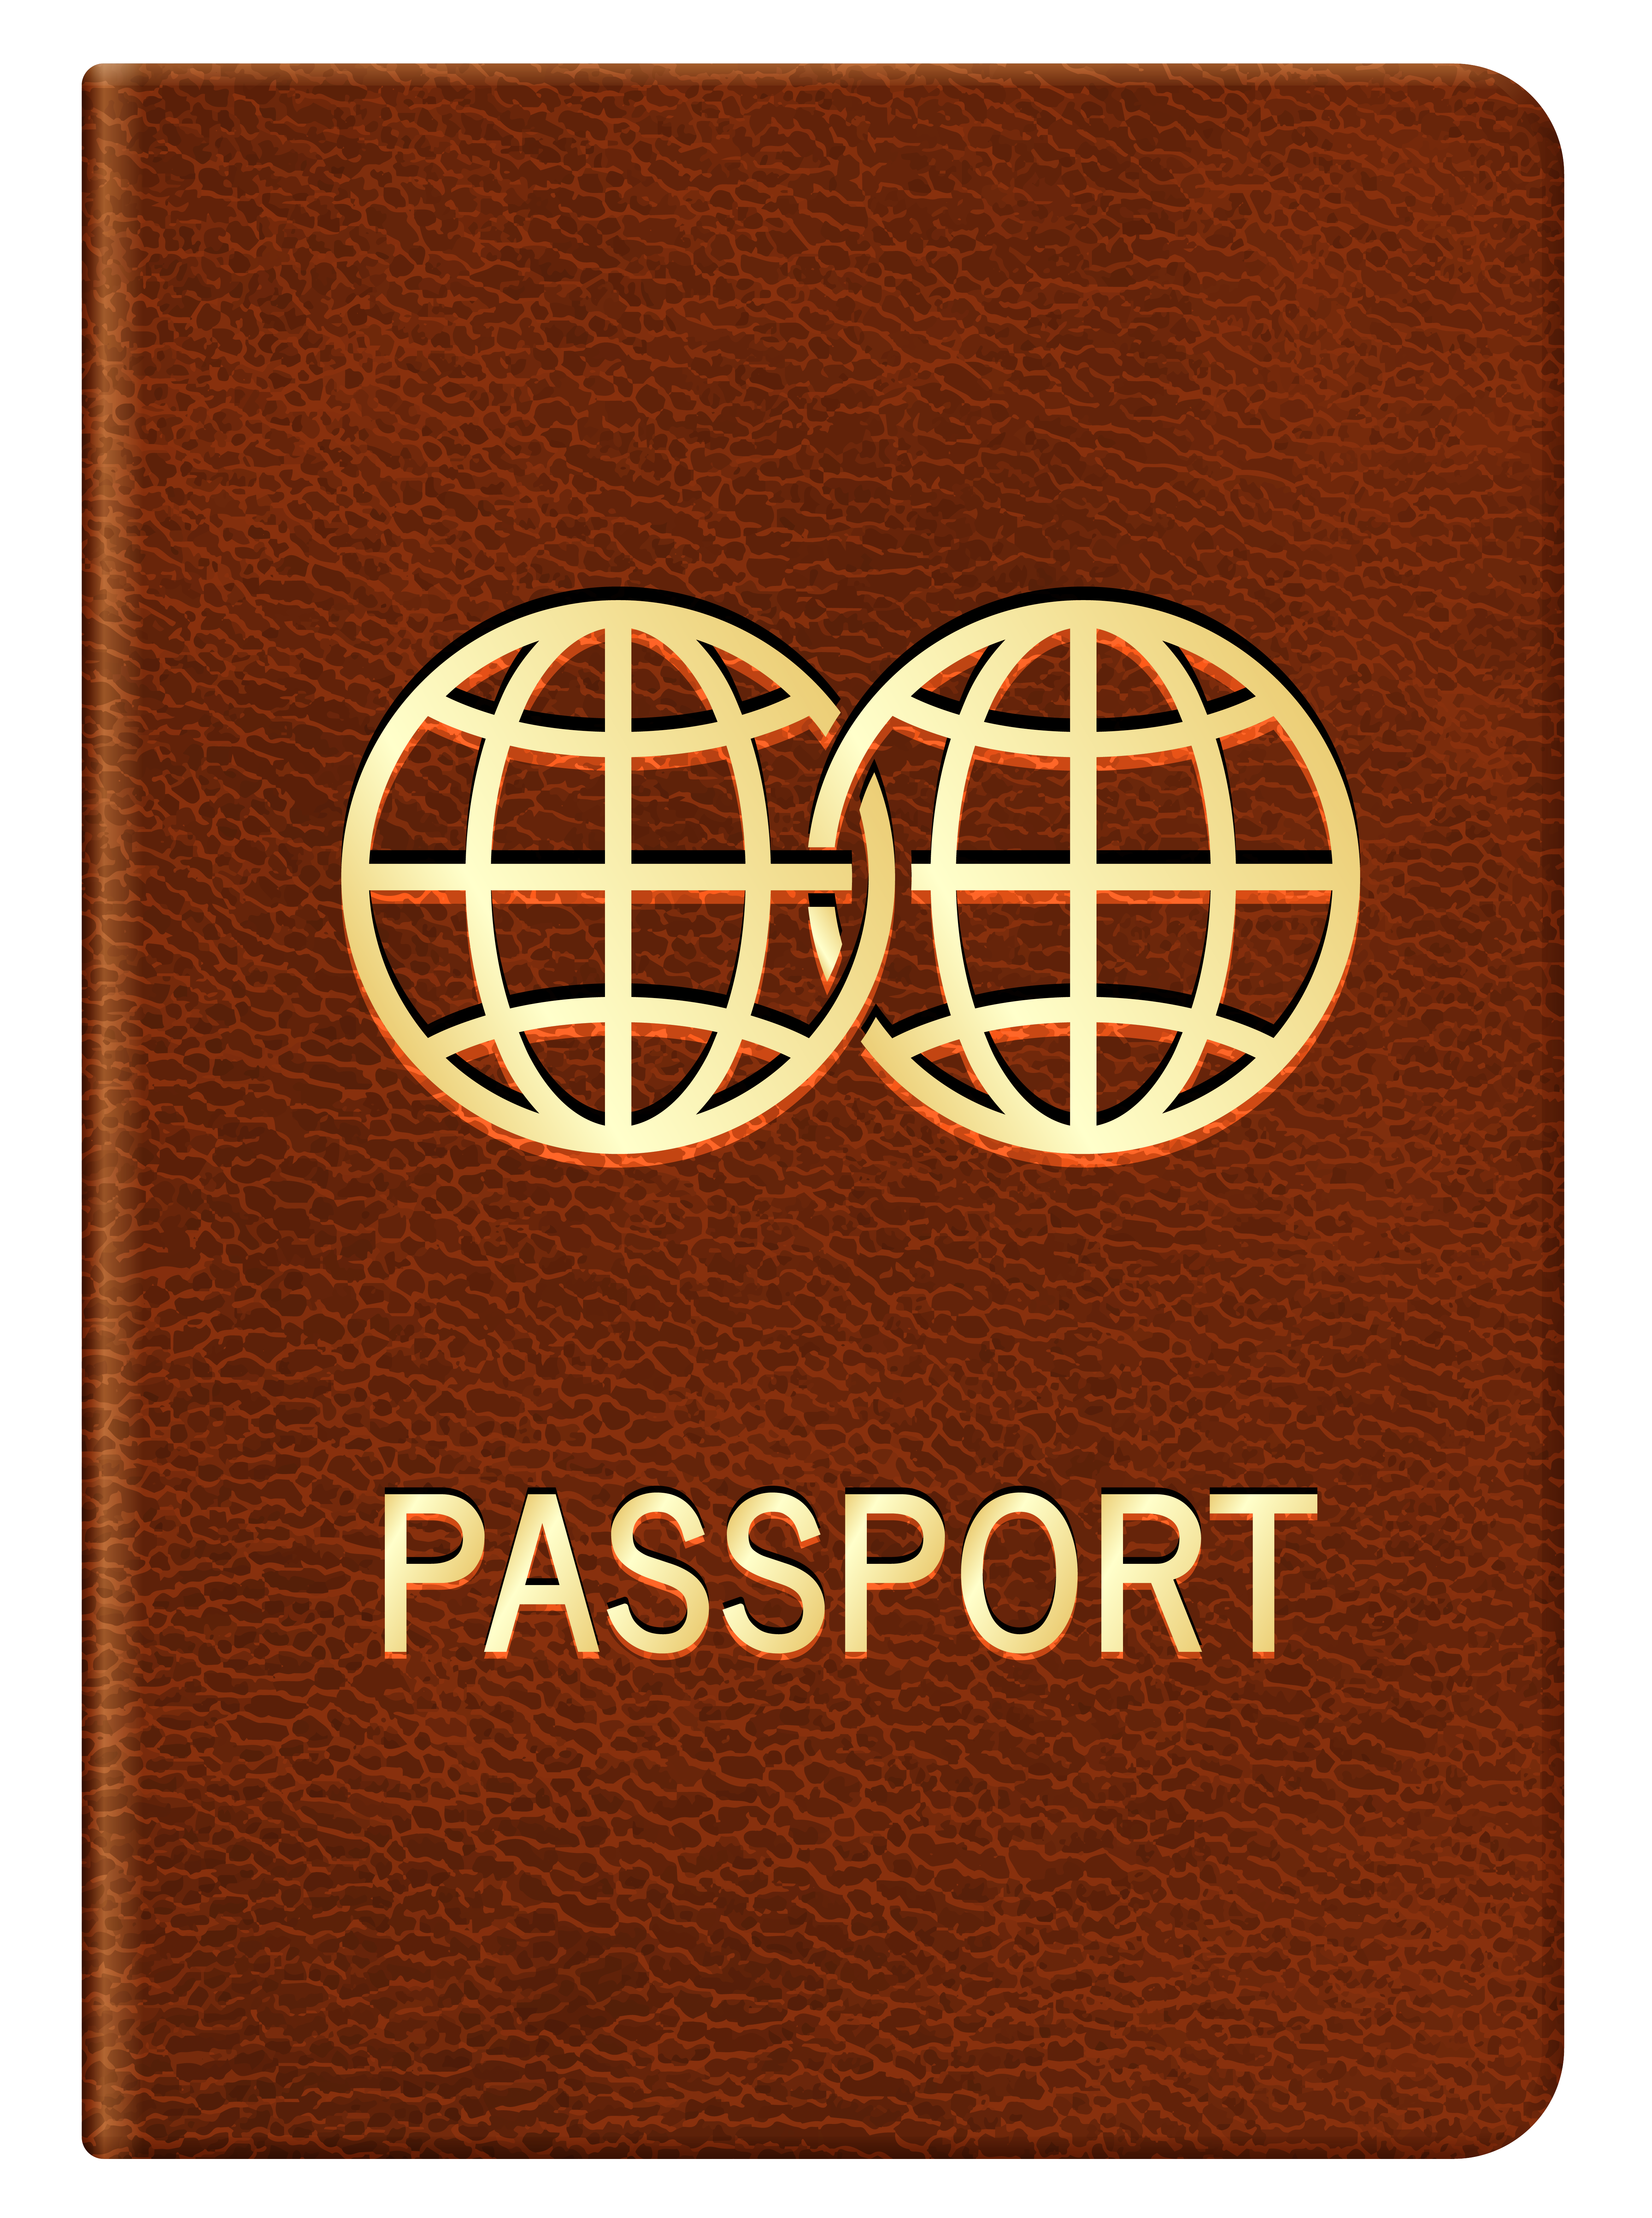 Png image gallery yopriceville. Passport clipart jpg library download